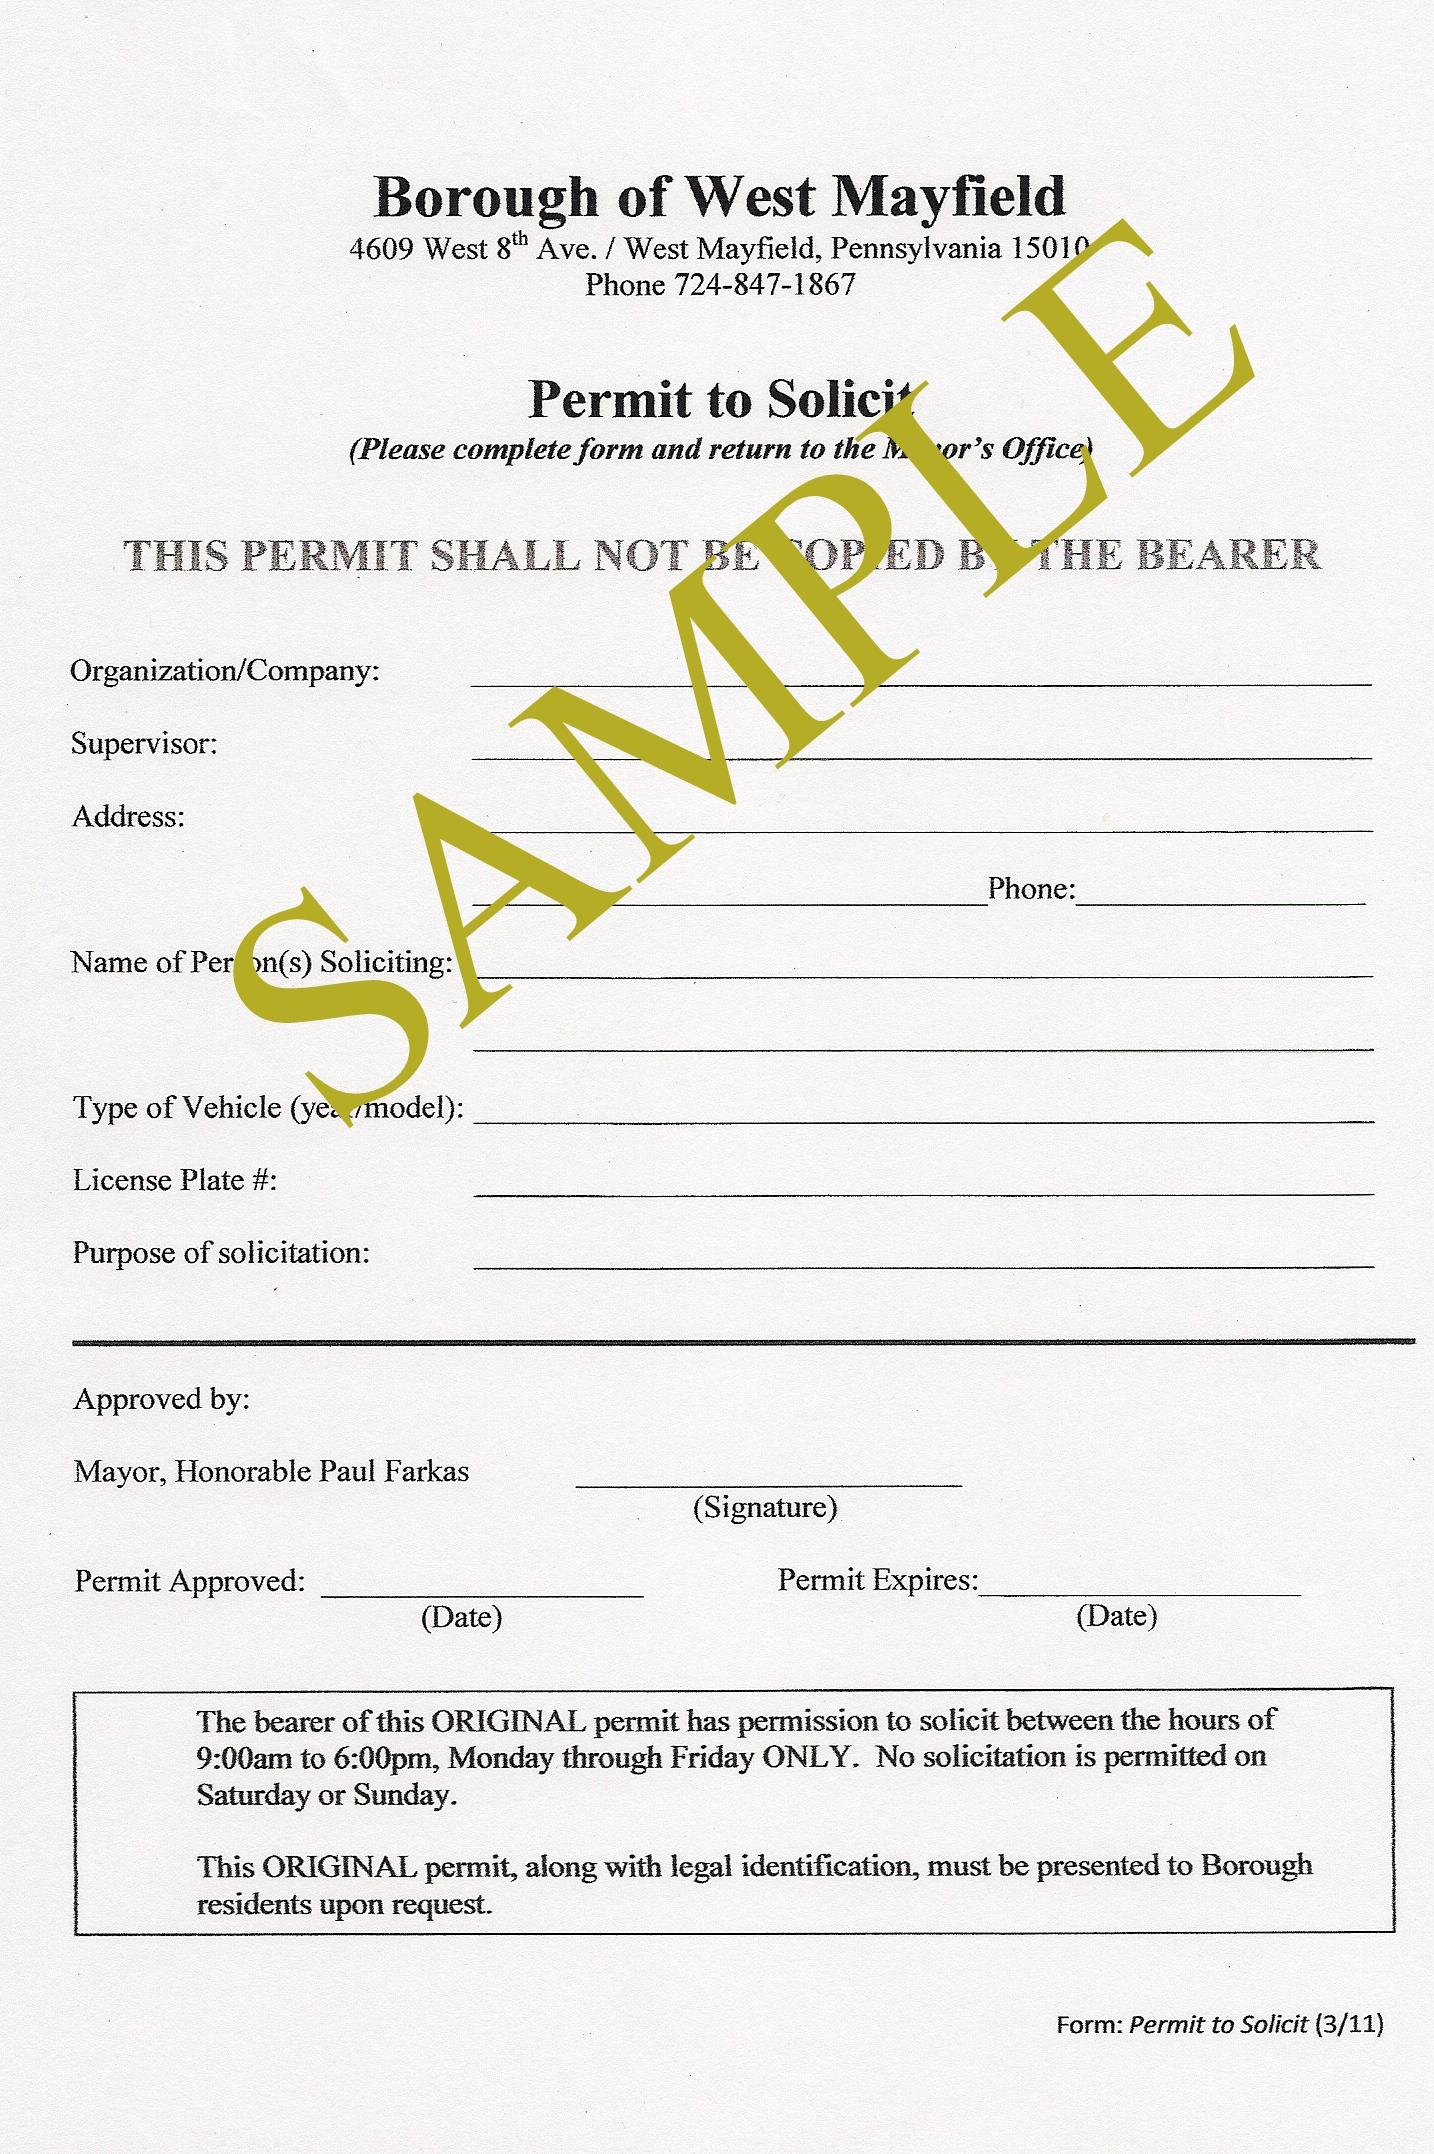 Sample Solicitation Permit | West Mayfield Borough With Business License Samples